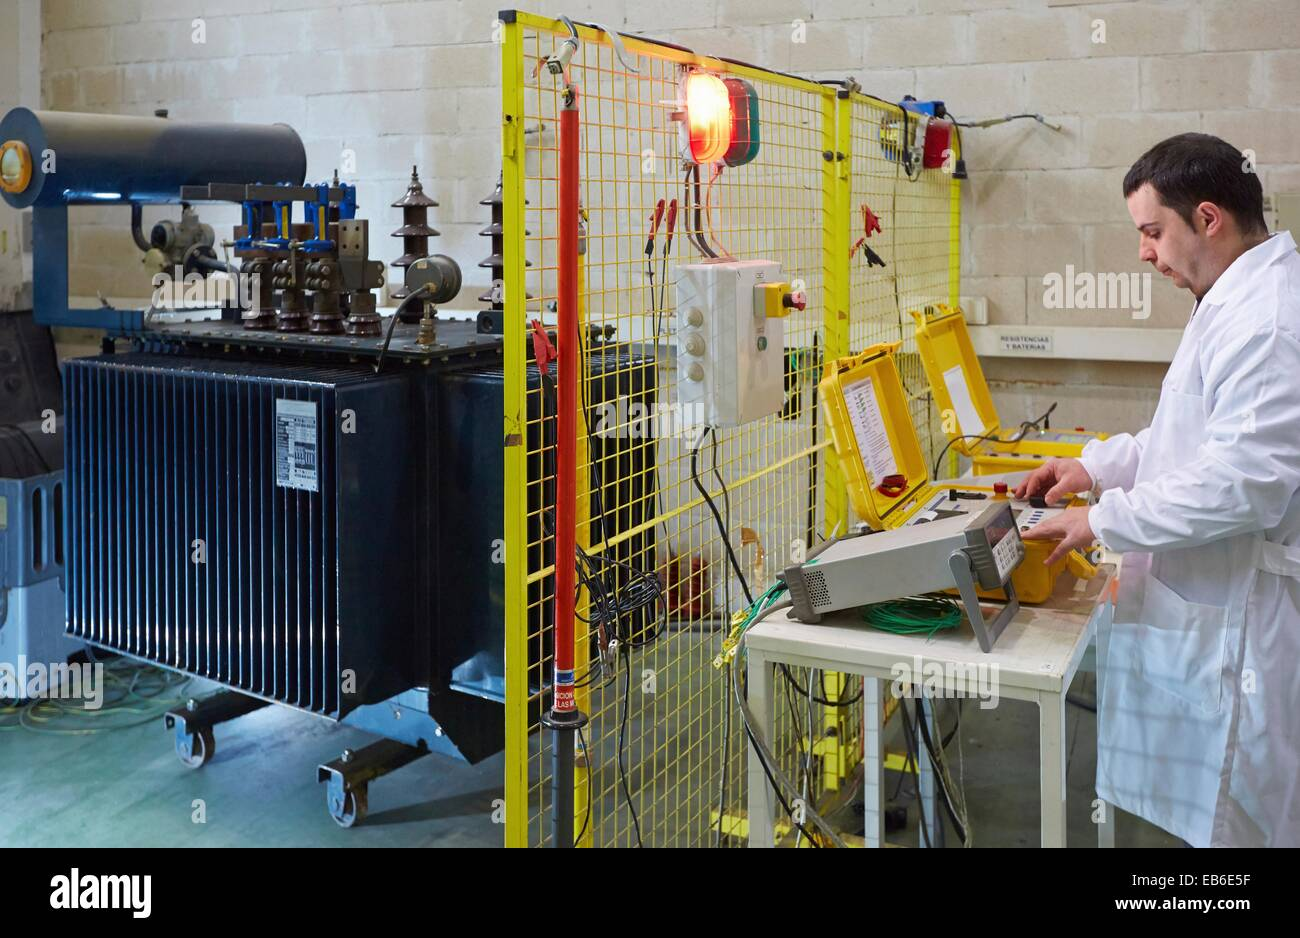 routine testing and type of electrical transformer low voltage routine testing and type of electrical transformer low voltage electric laboratory certification of electrical equipment